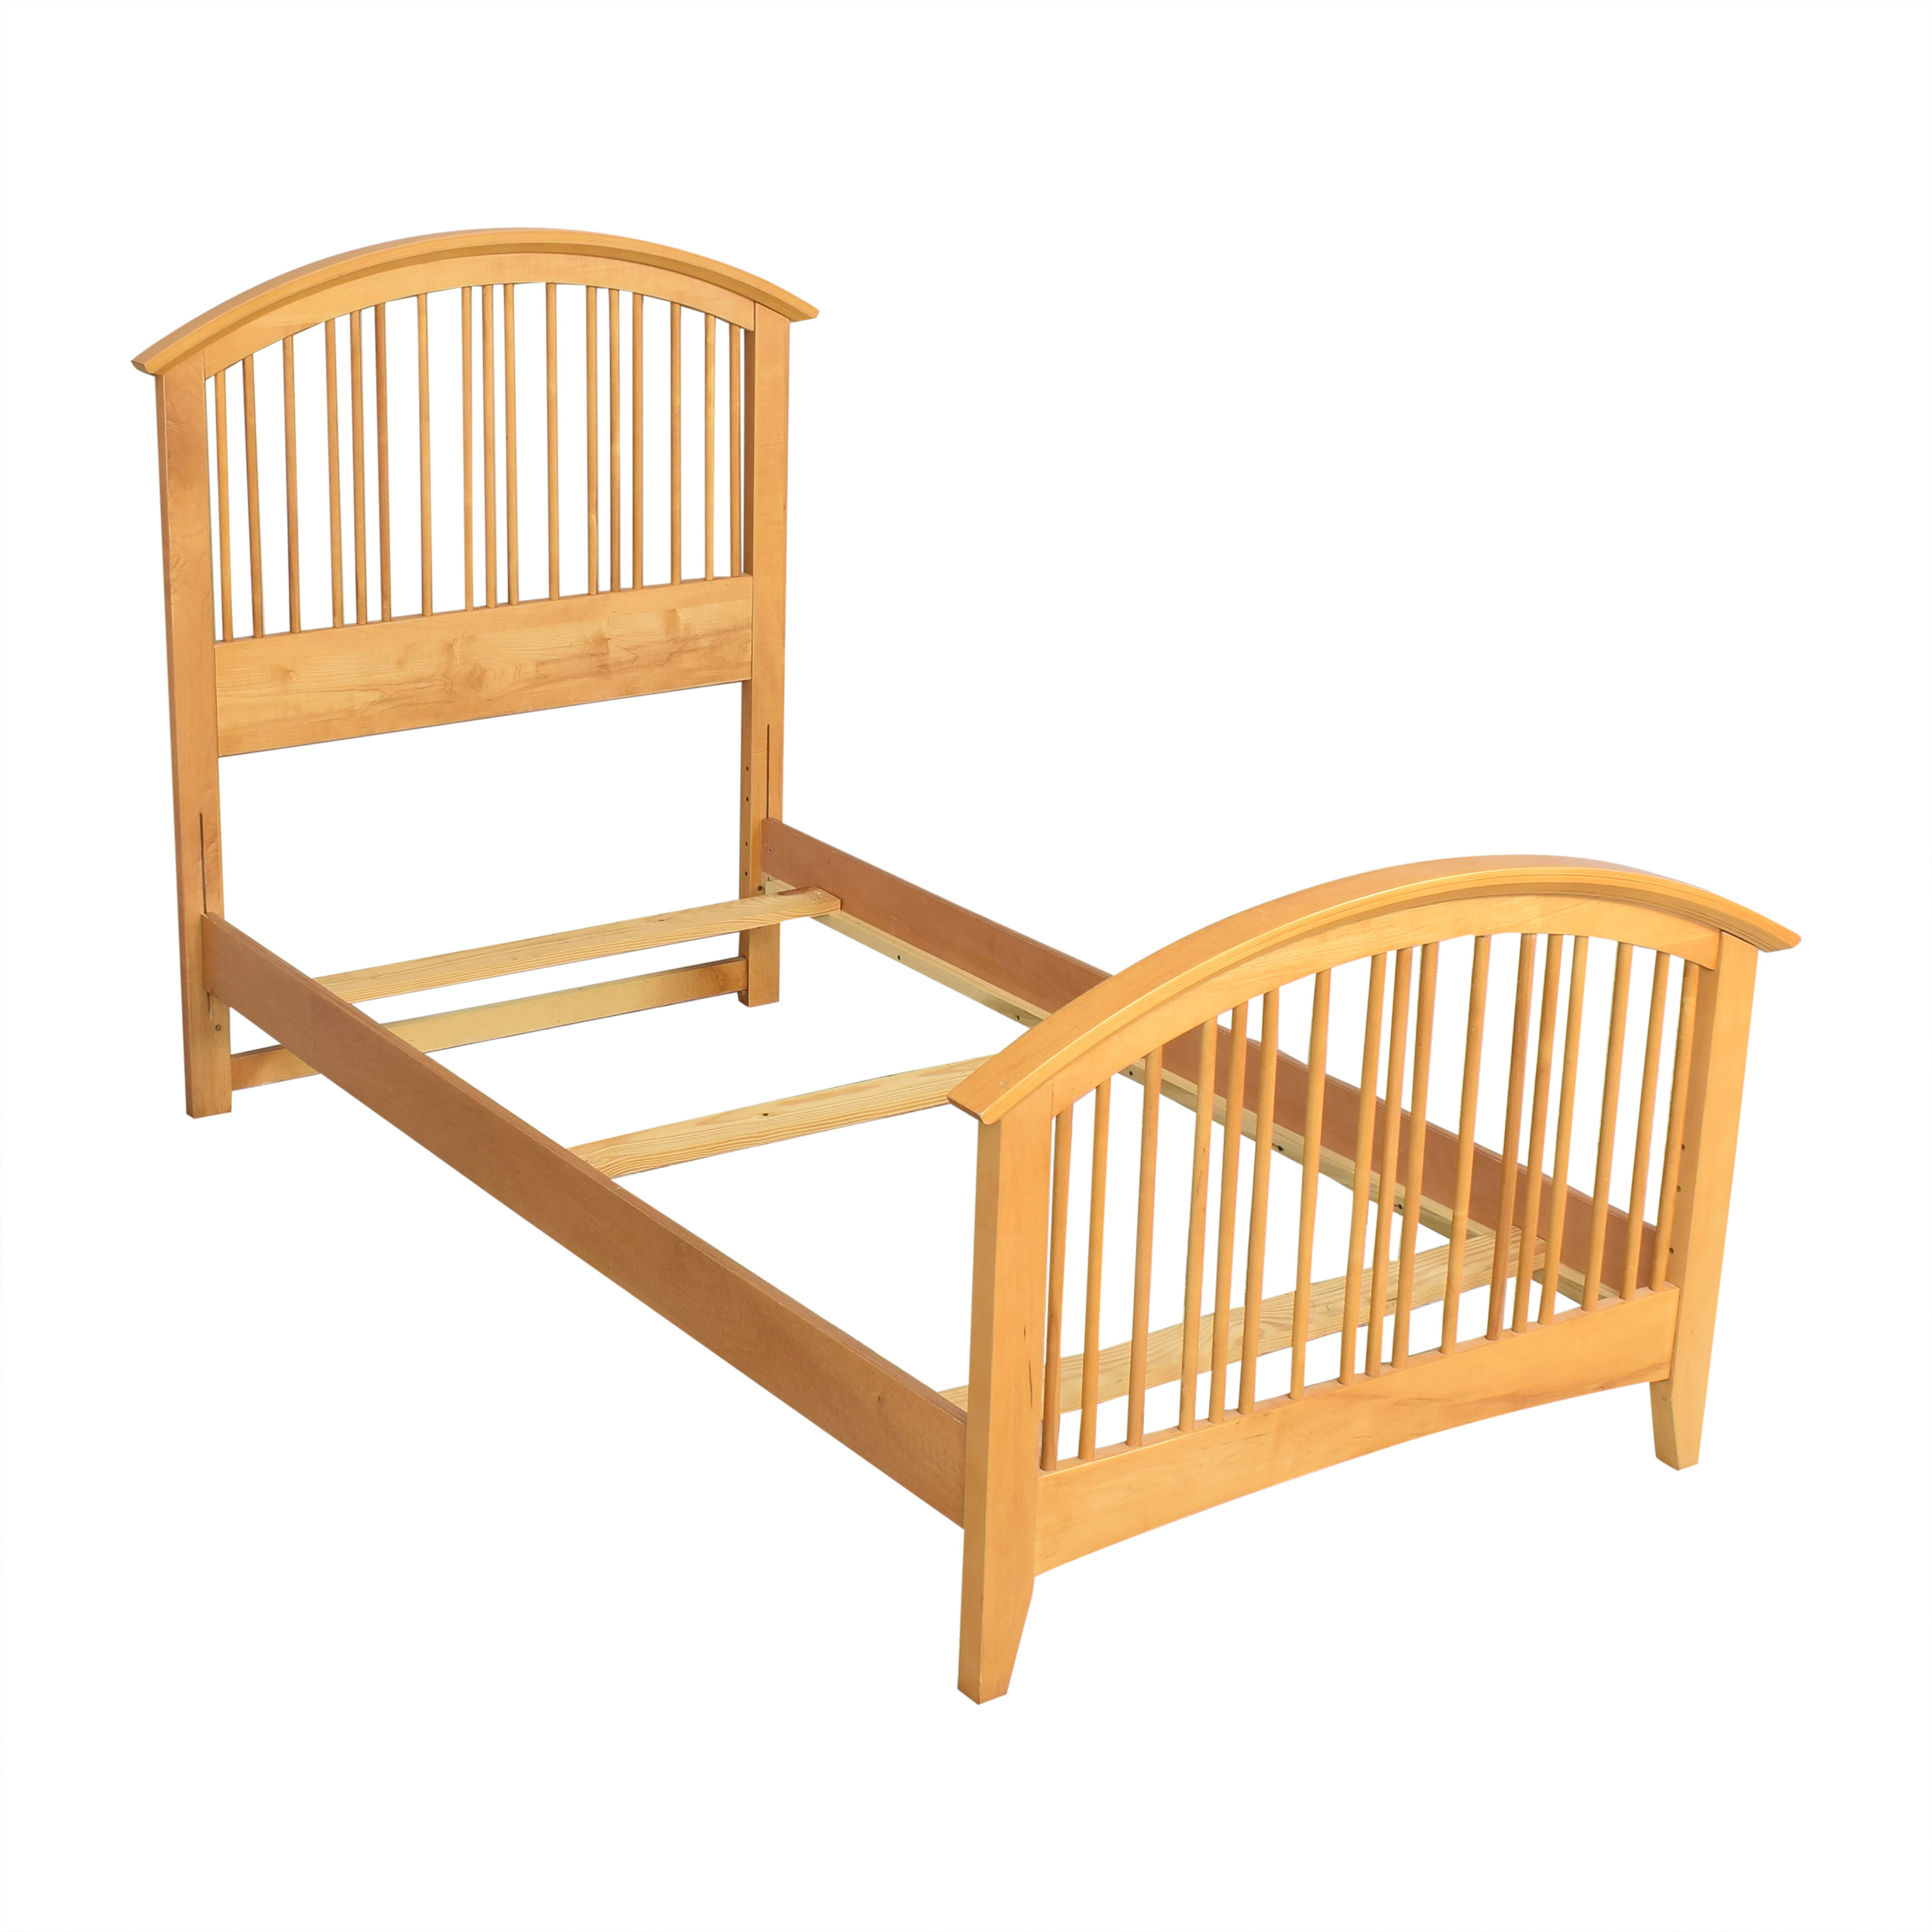 Stanley Furniture Stanley Furniture Twin Bed Frame price